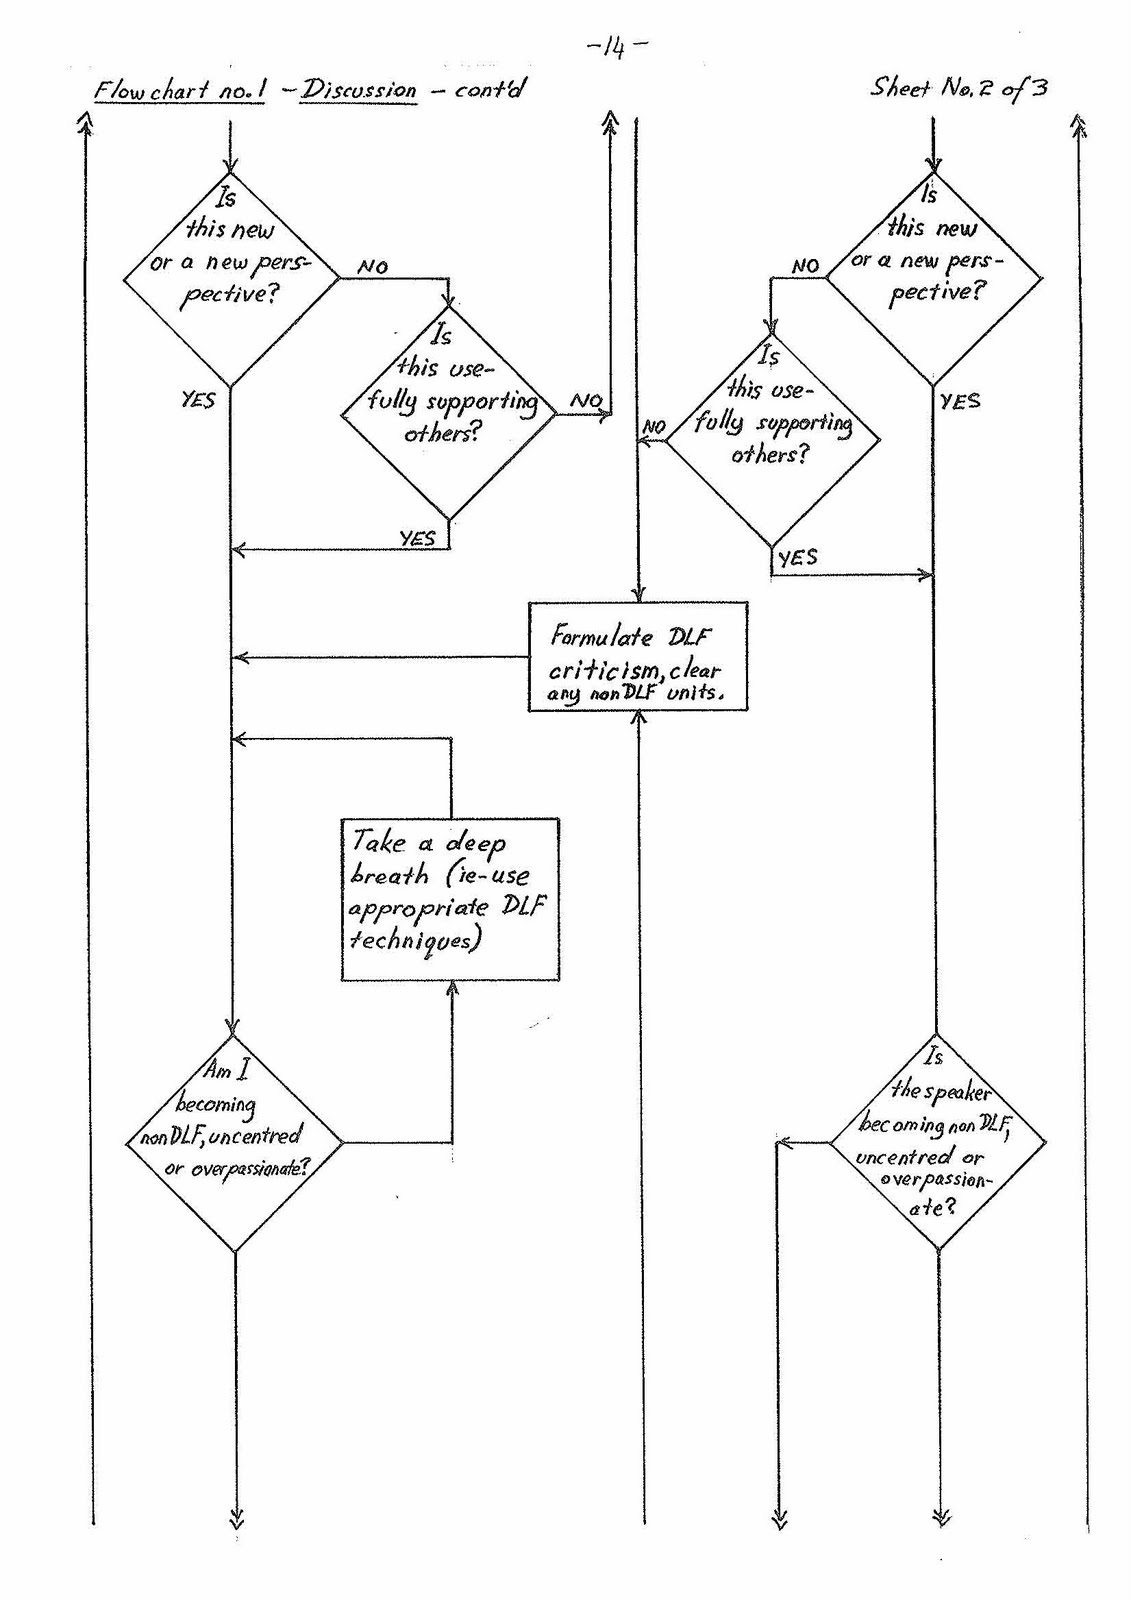 Gnwmythr's Regression-Rescue Manual: General flow charts